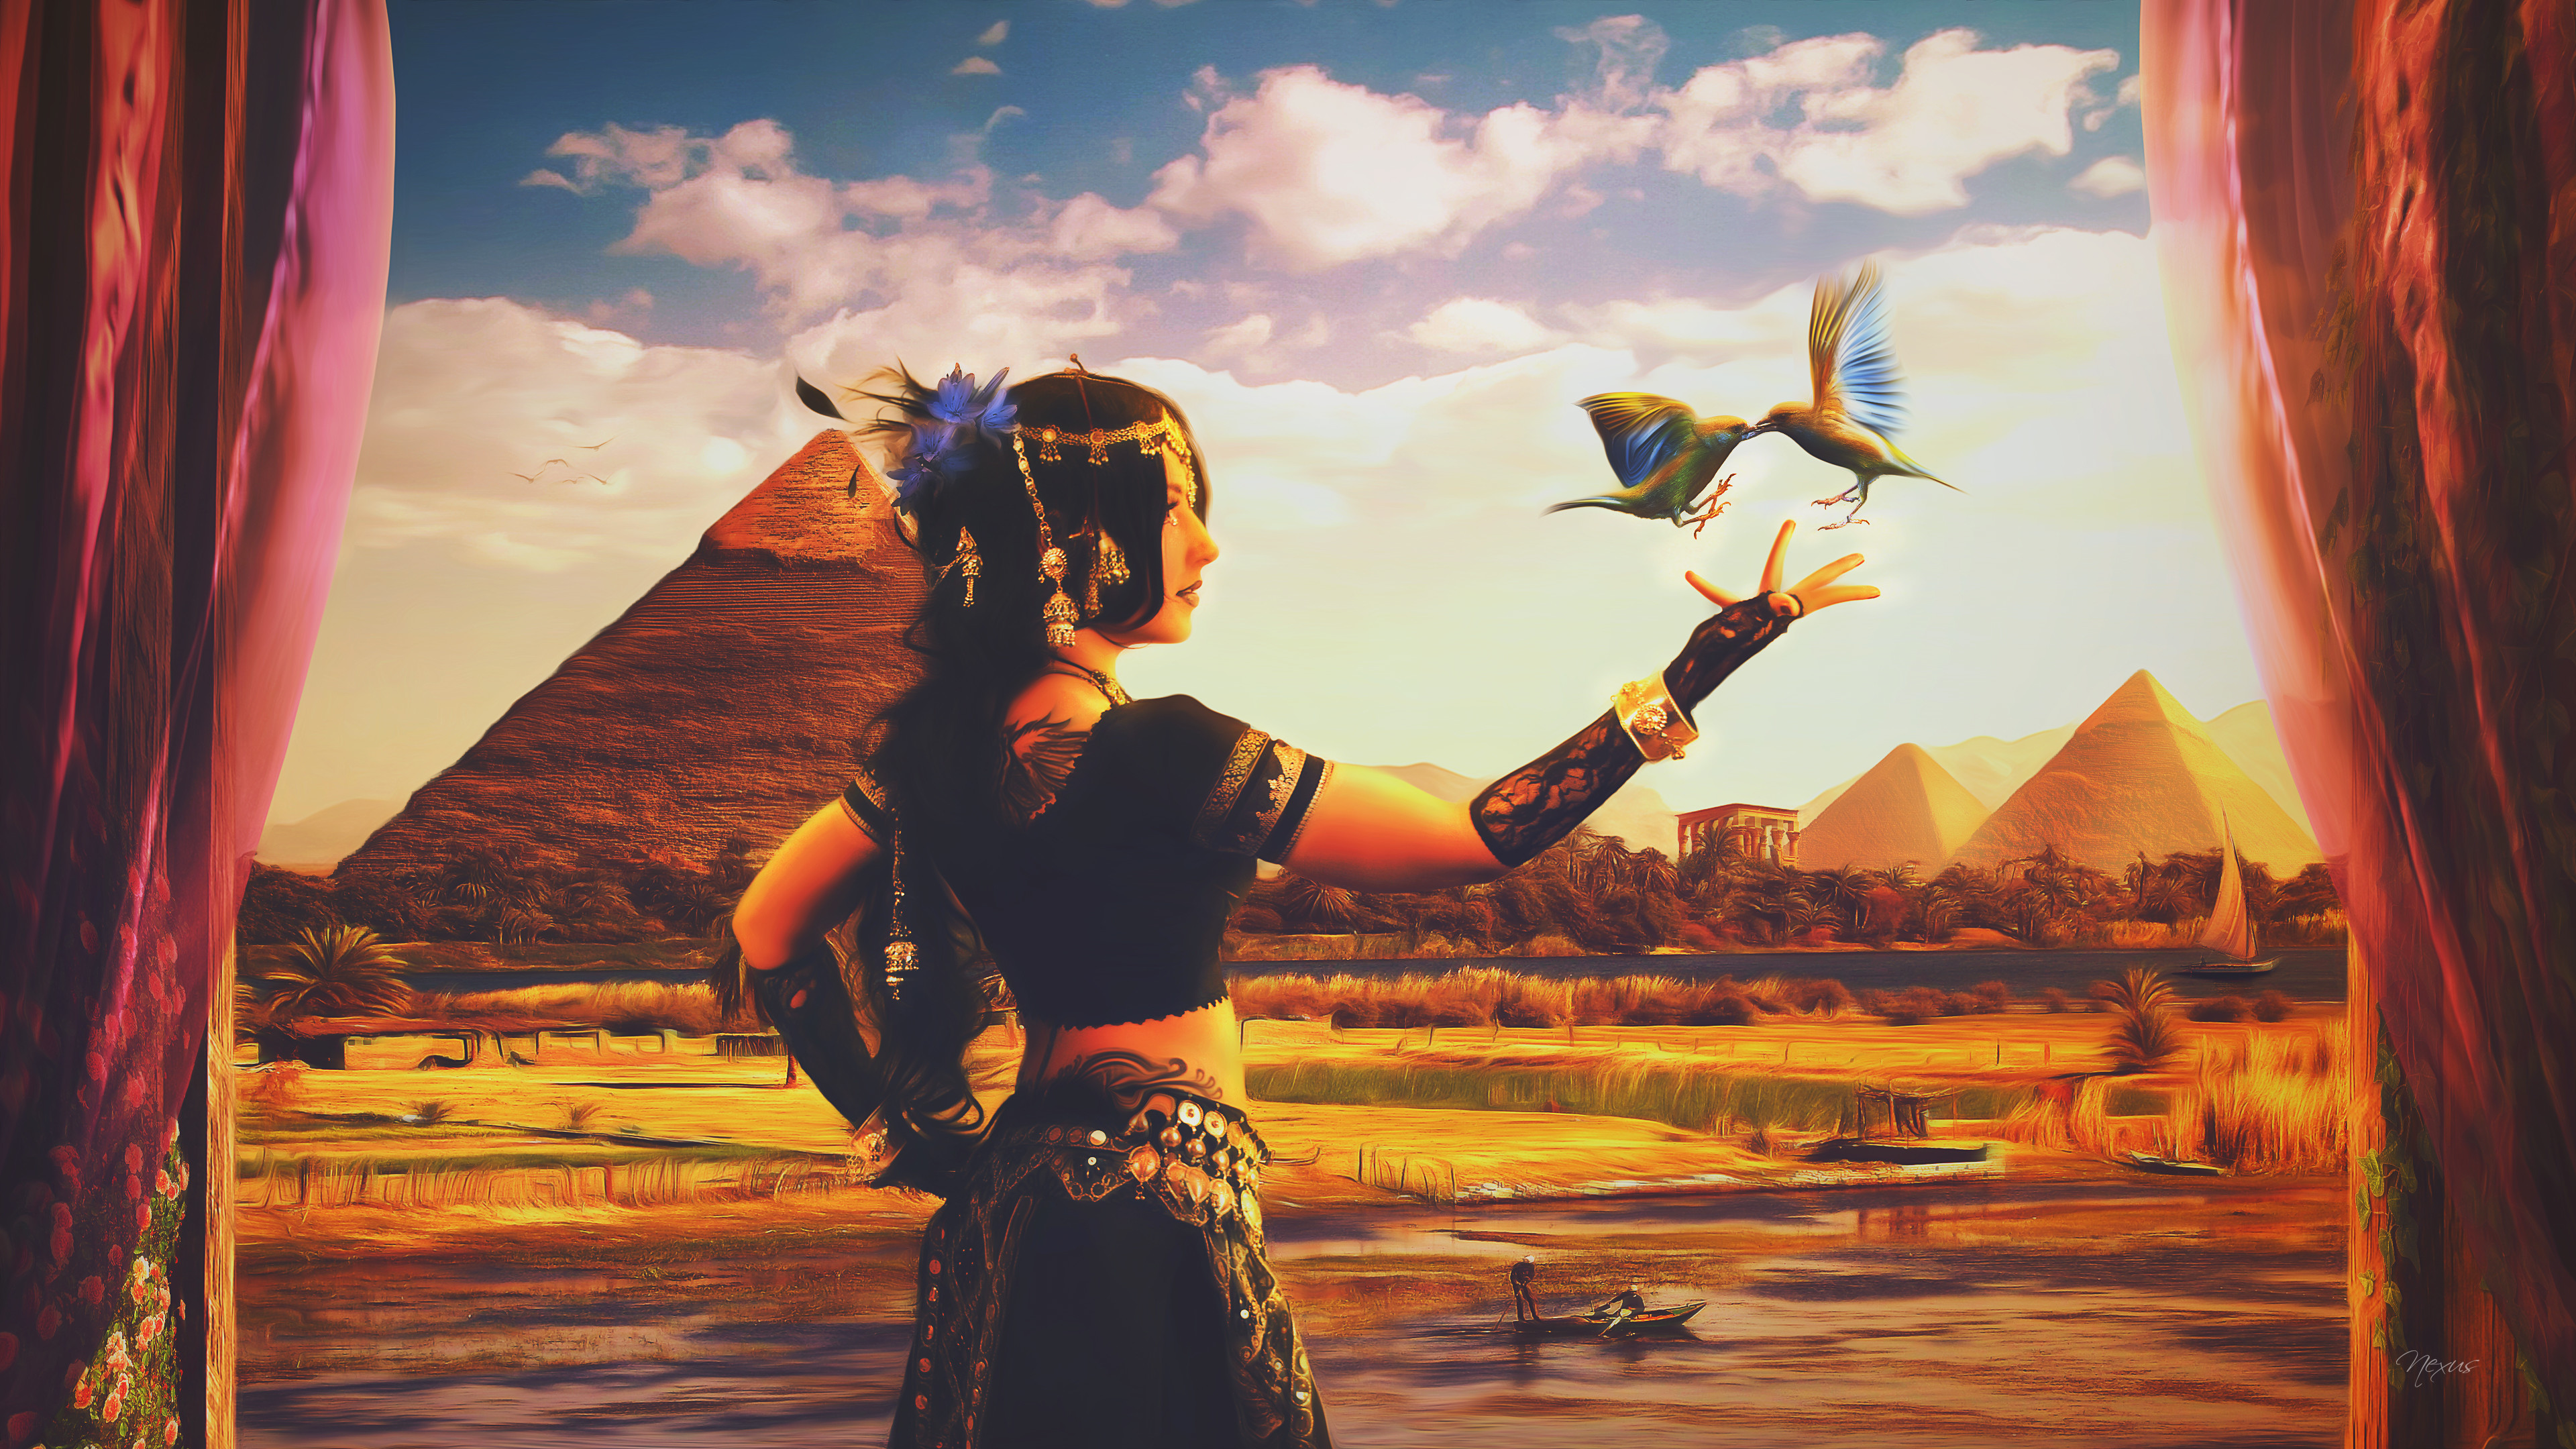 3840x2160 Fantasy - Egyptian Ägypten Arabic Vogel Dancer Steppe Digitale Kunst  Fantasy Magisch Nile Orientalisch Pyramid Wallpaper